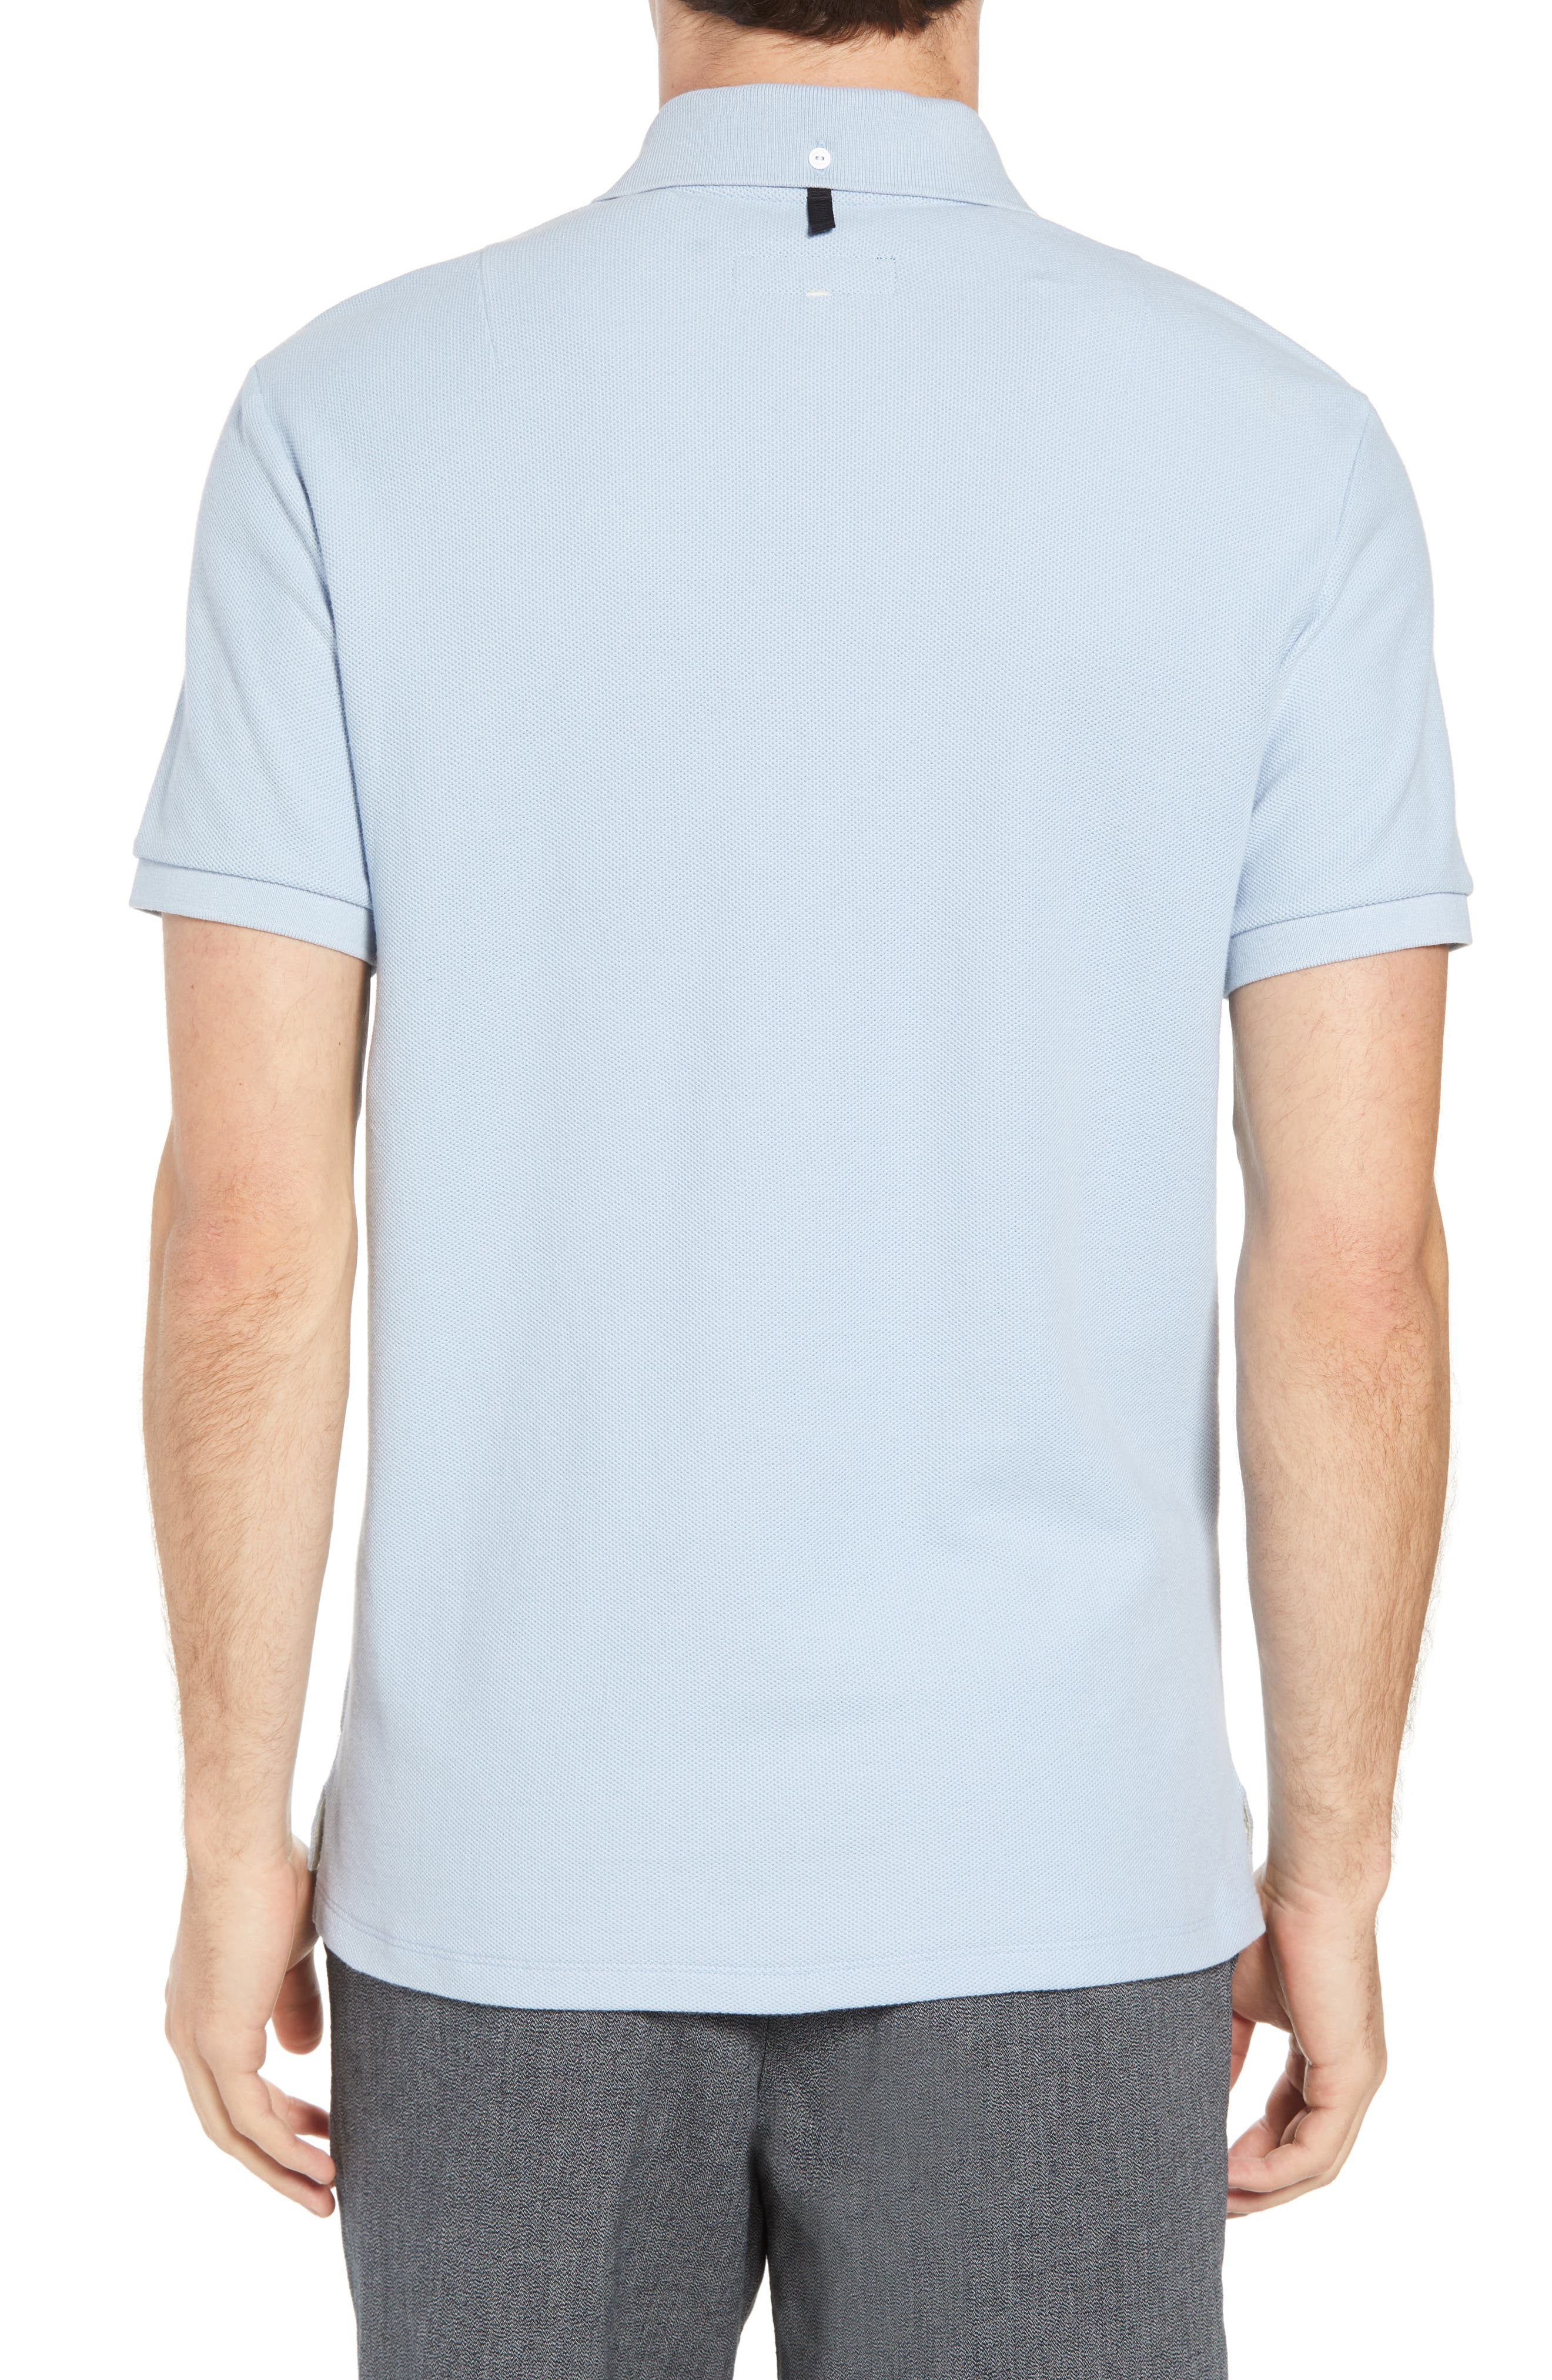 Regular Fit Polo,                             Alternate thumbnail 2, color,                             Pale Perwnkl